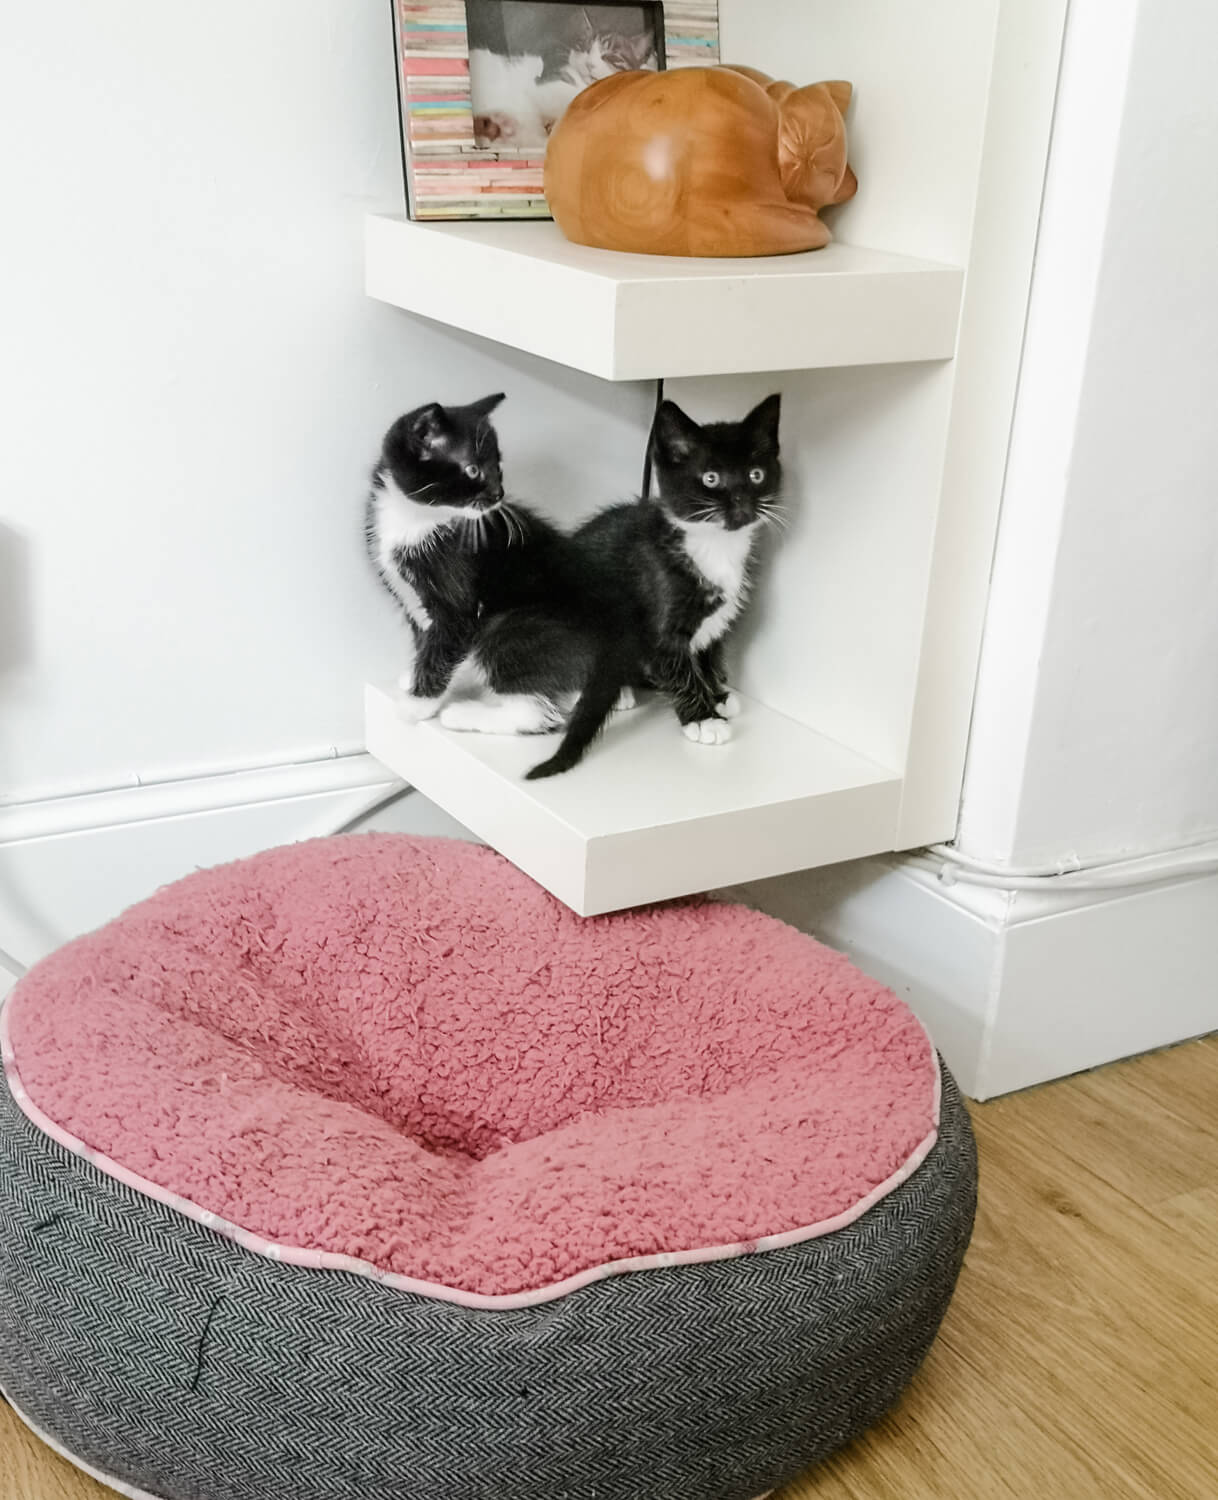 Two black and white (tuxedo kittens) sitting on a low shelf with a shelf above them which has a wooden cat shape box containing the ashes of Milo (Emma's first cat) as well as a framed photo of Milo. The kittens are tiny and fit in the box shelf perfectly. Below them is a pink and grey cat bed.